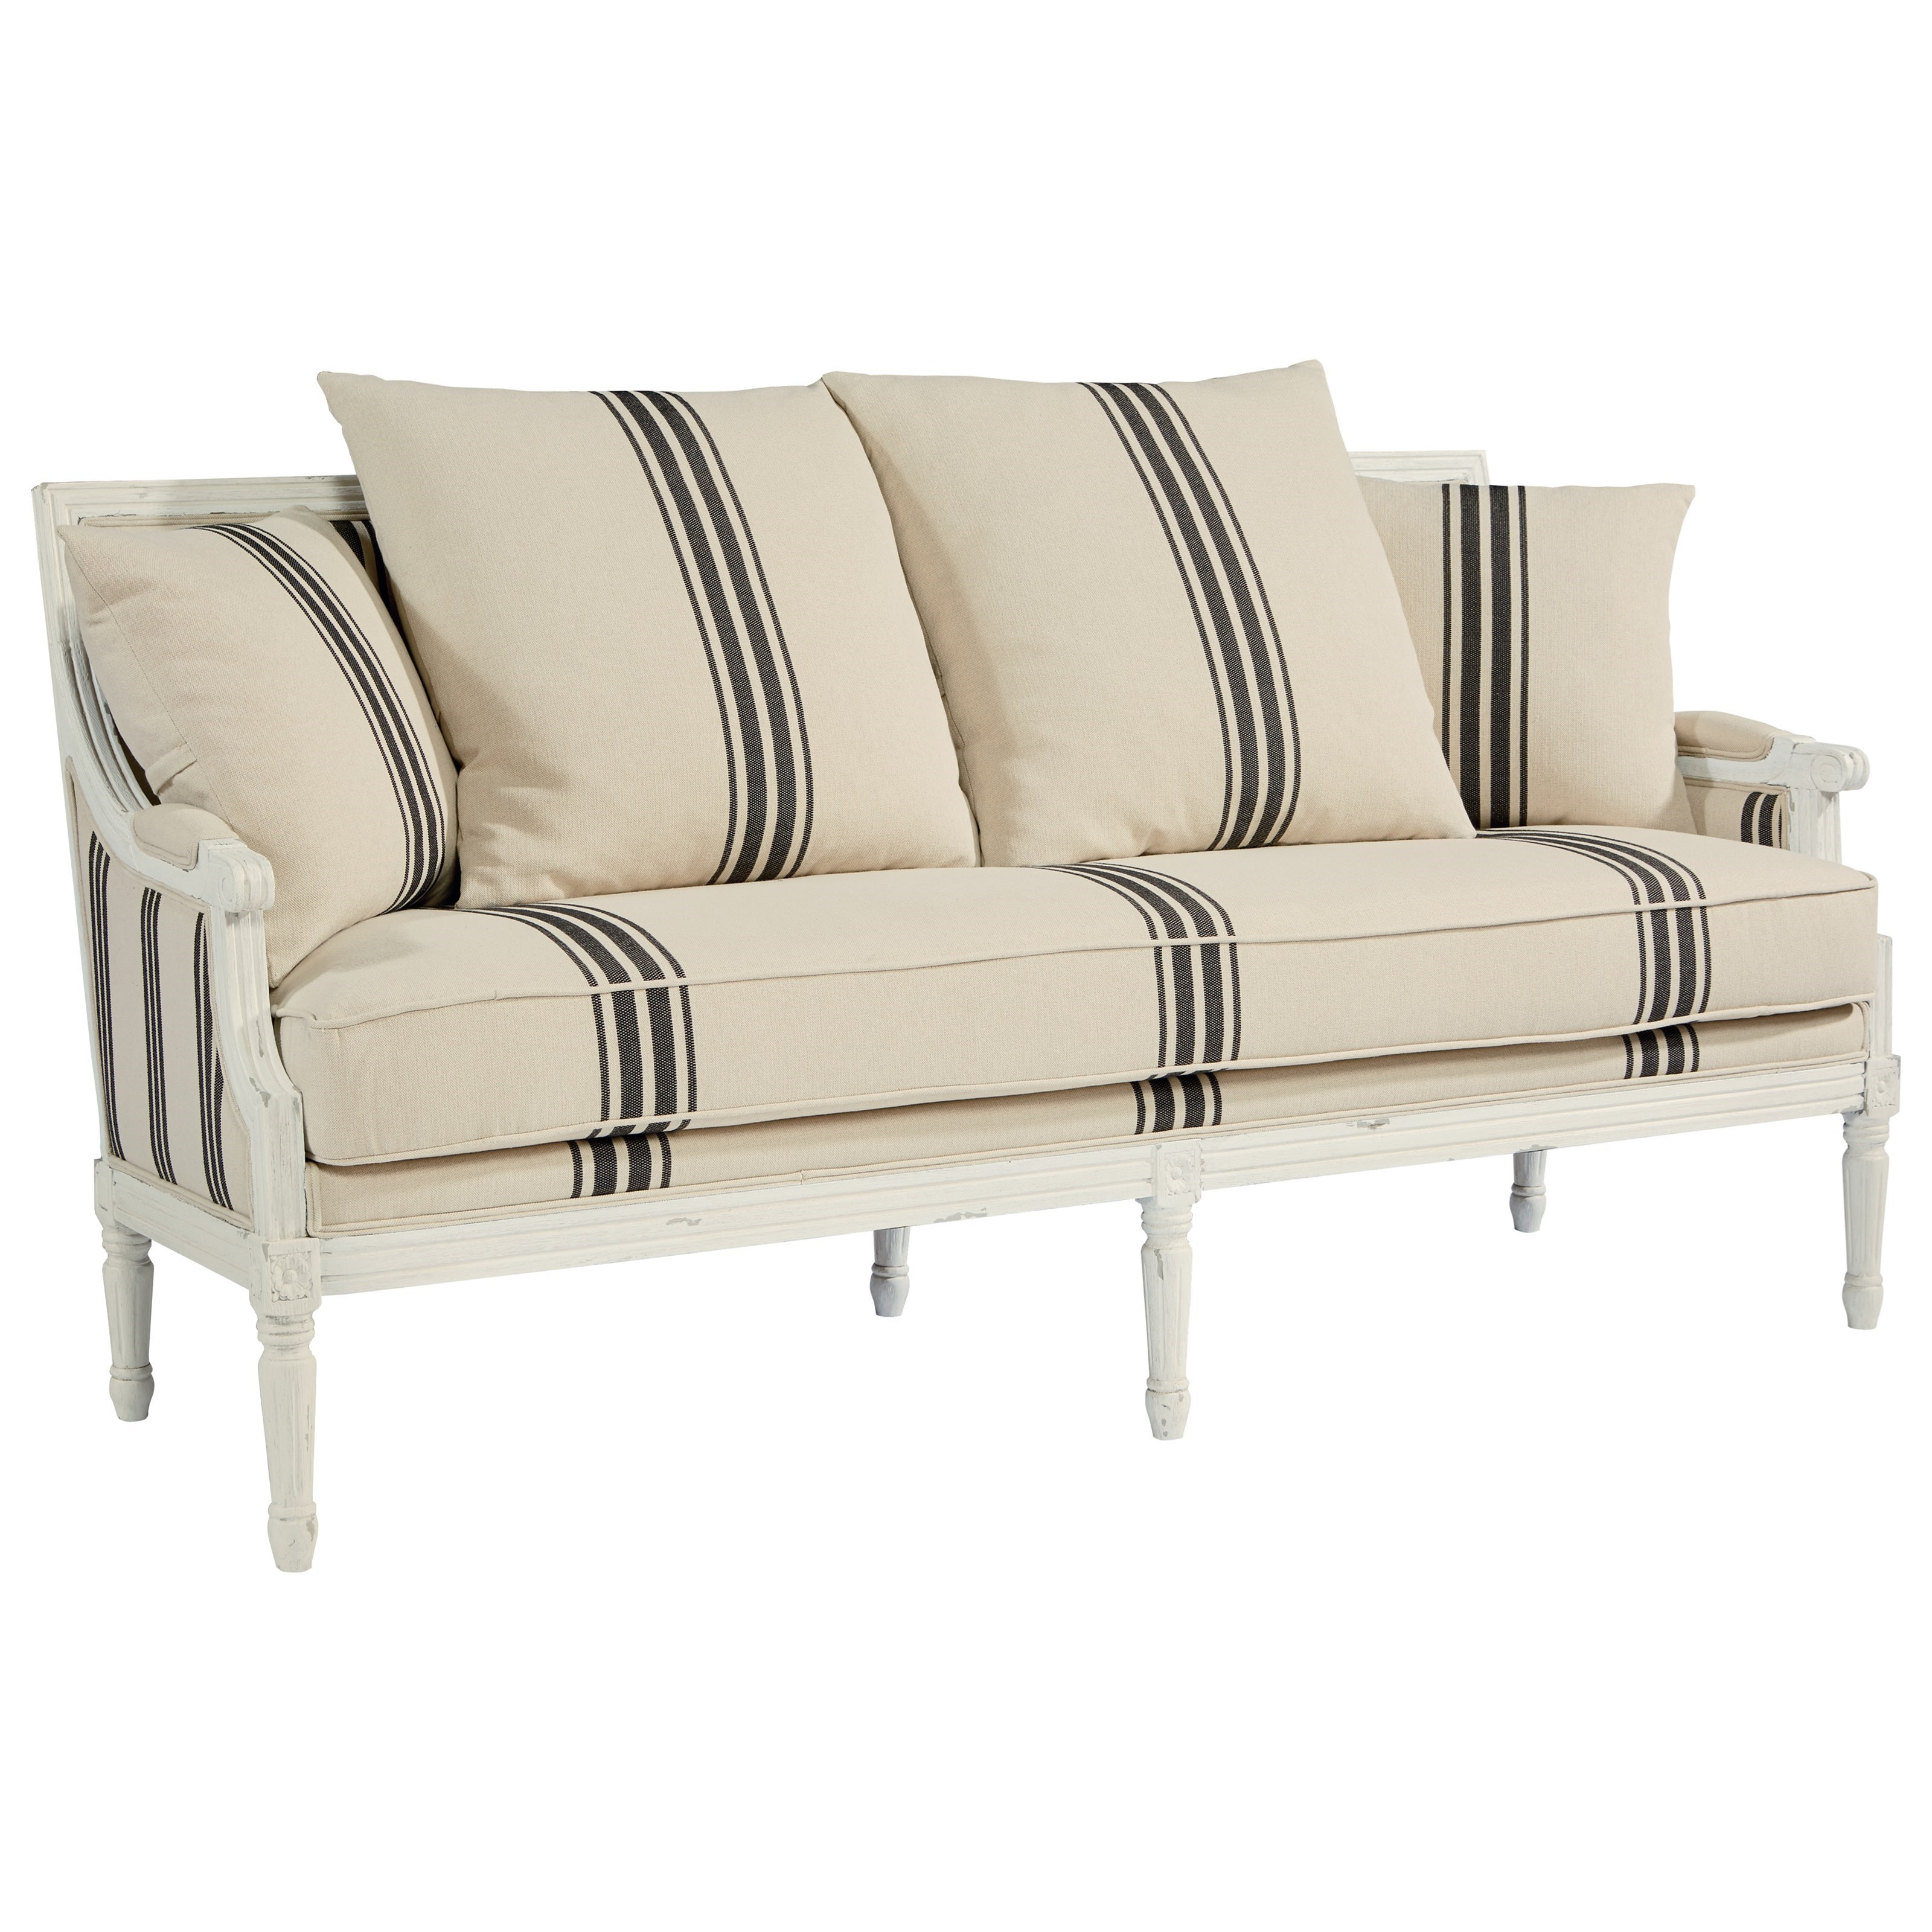 Magnolia Home by Joanna Gaines Parlor Settee Sofa - Item Number: 55508301